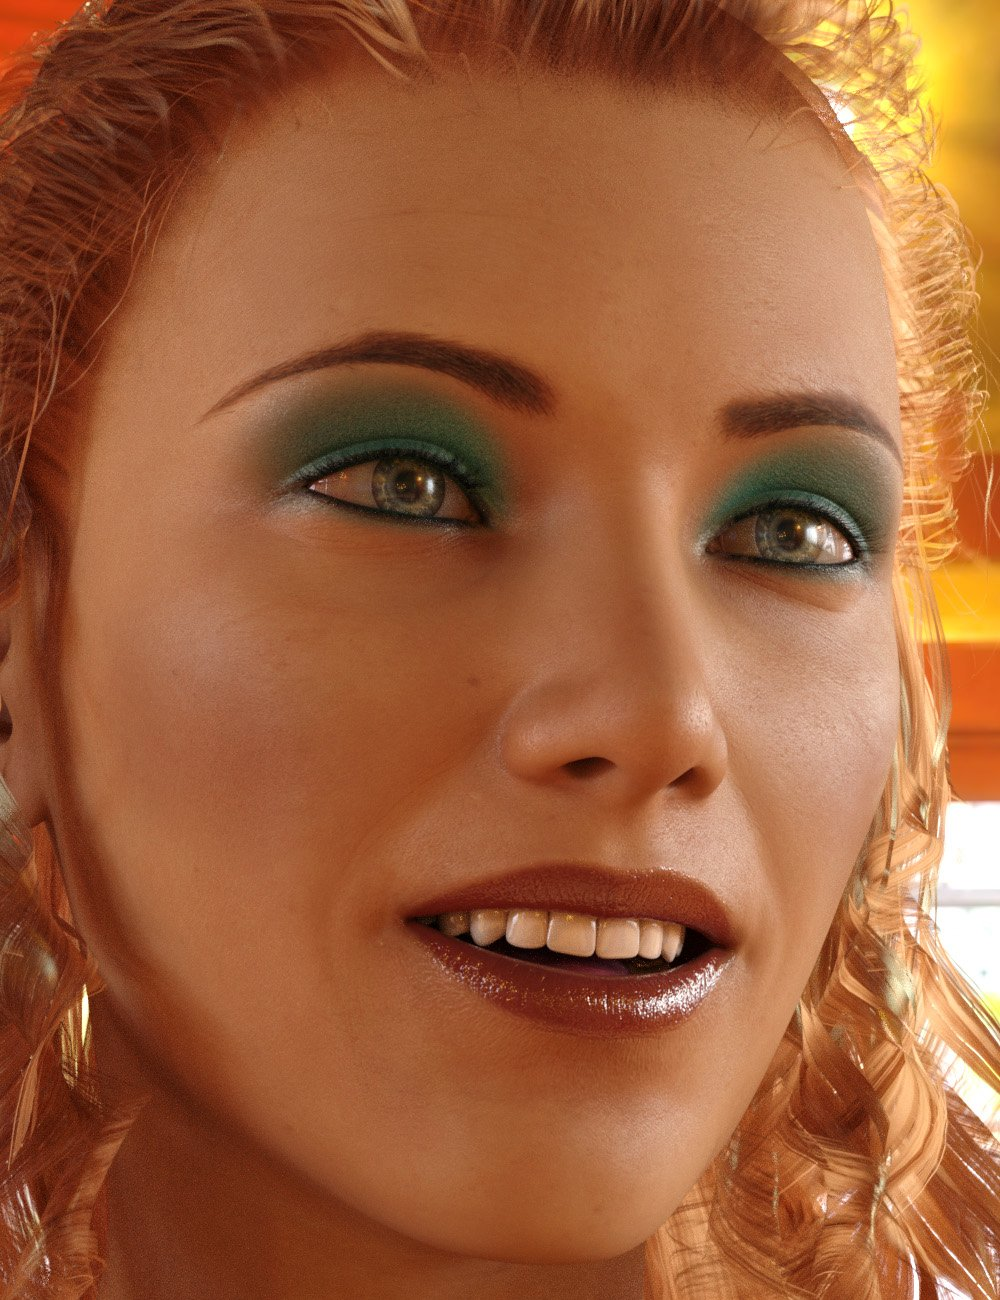 Ultimate Make-Up for Genesis 8 Female(s) by: PhilW, 3D Models by Daz 3D